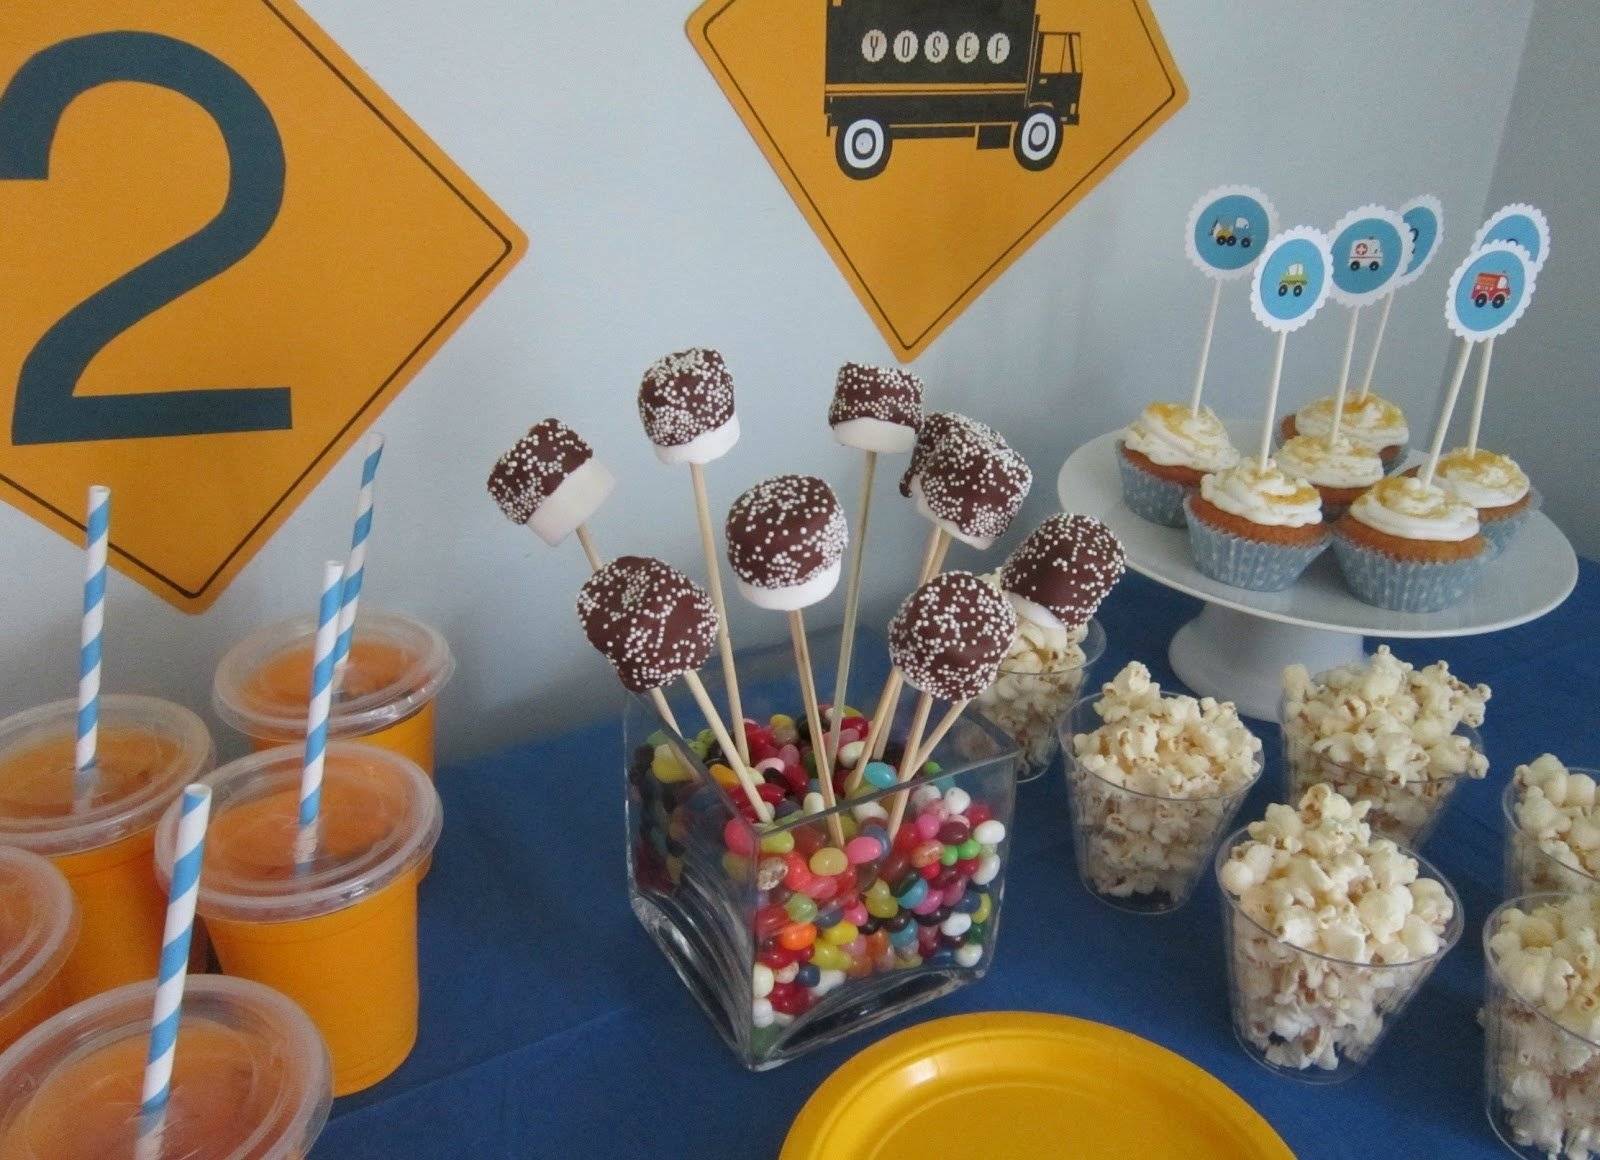 10 Unique Birthday Party Ideas For 12 Year Old Boys Themes Game A